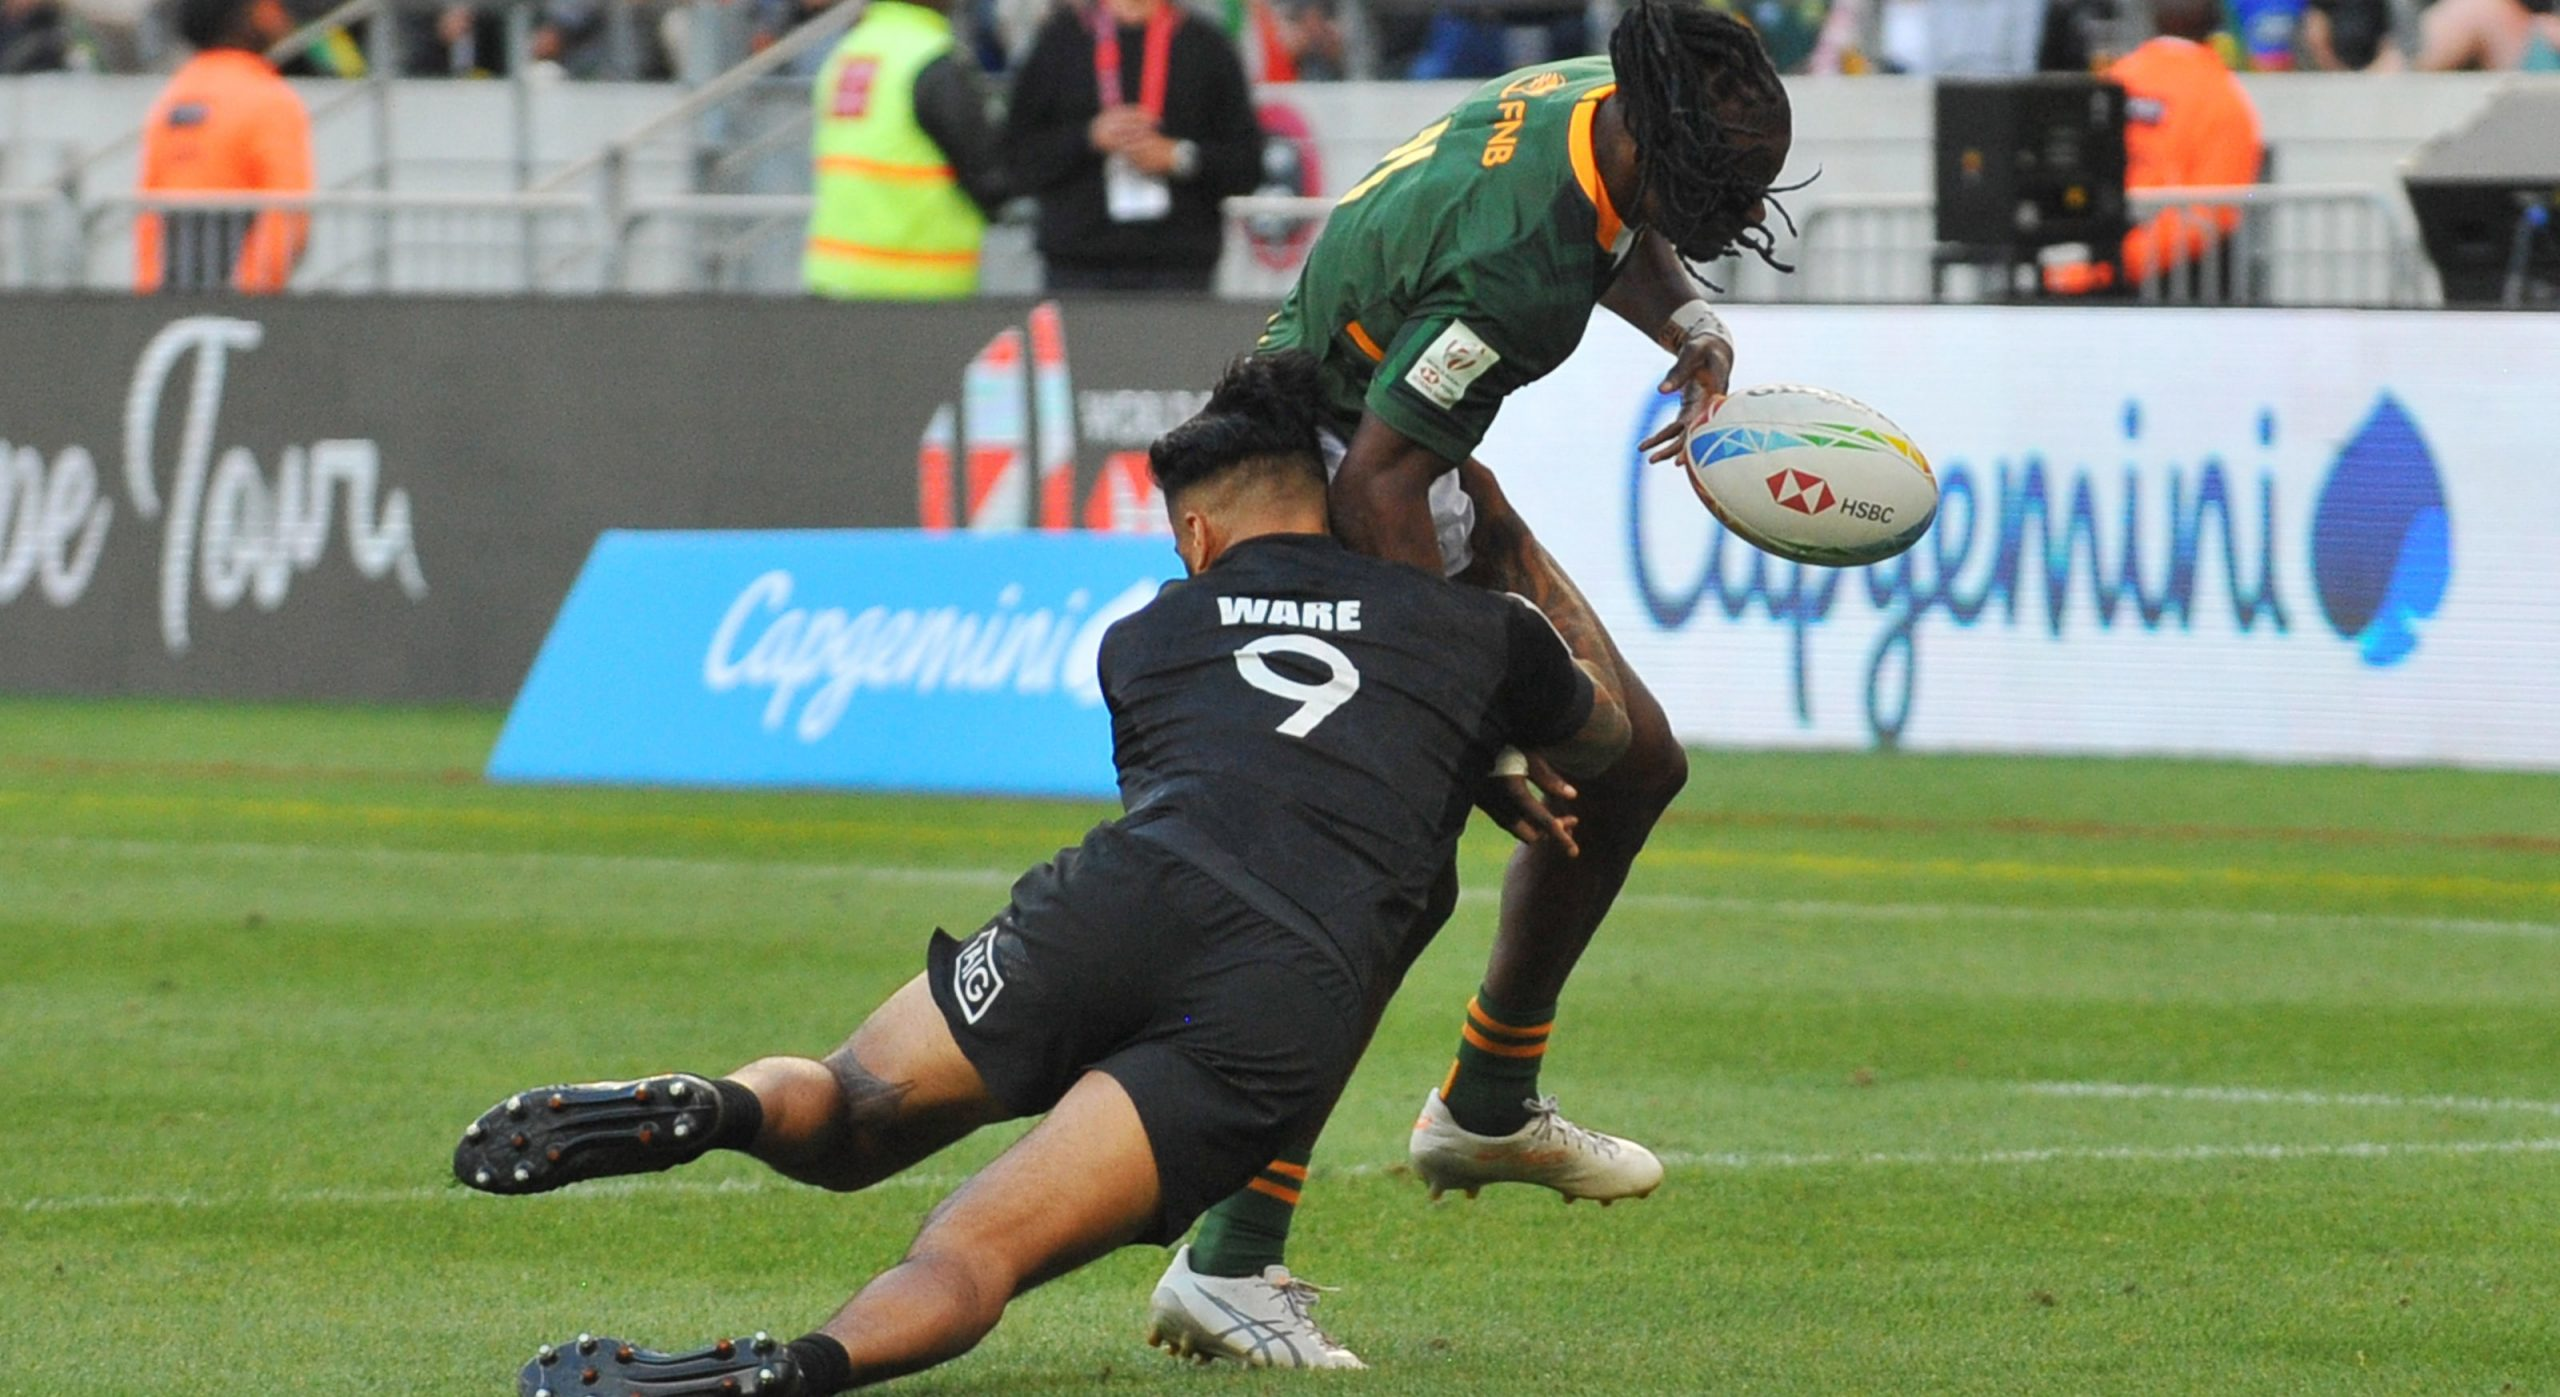 Blitzboks end 10th in Hamilton Rugby Sevens in New Zealand - Sports Leo